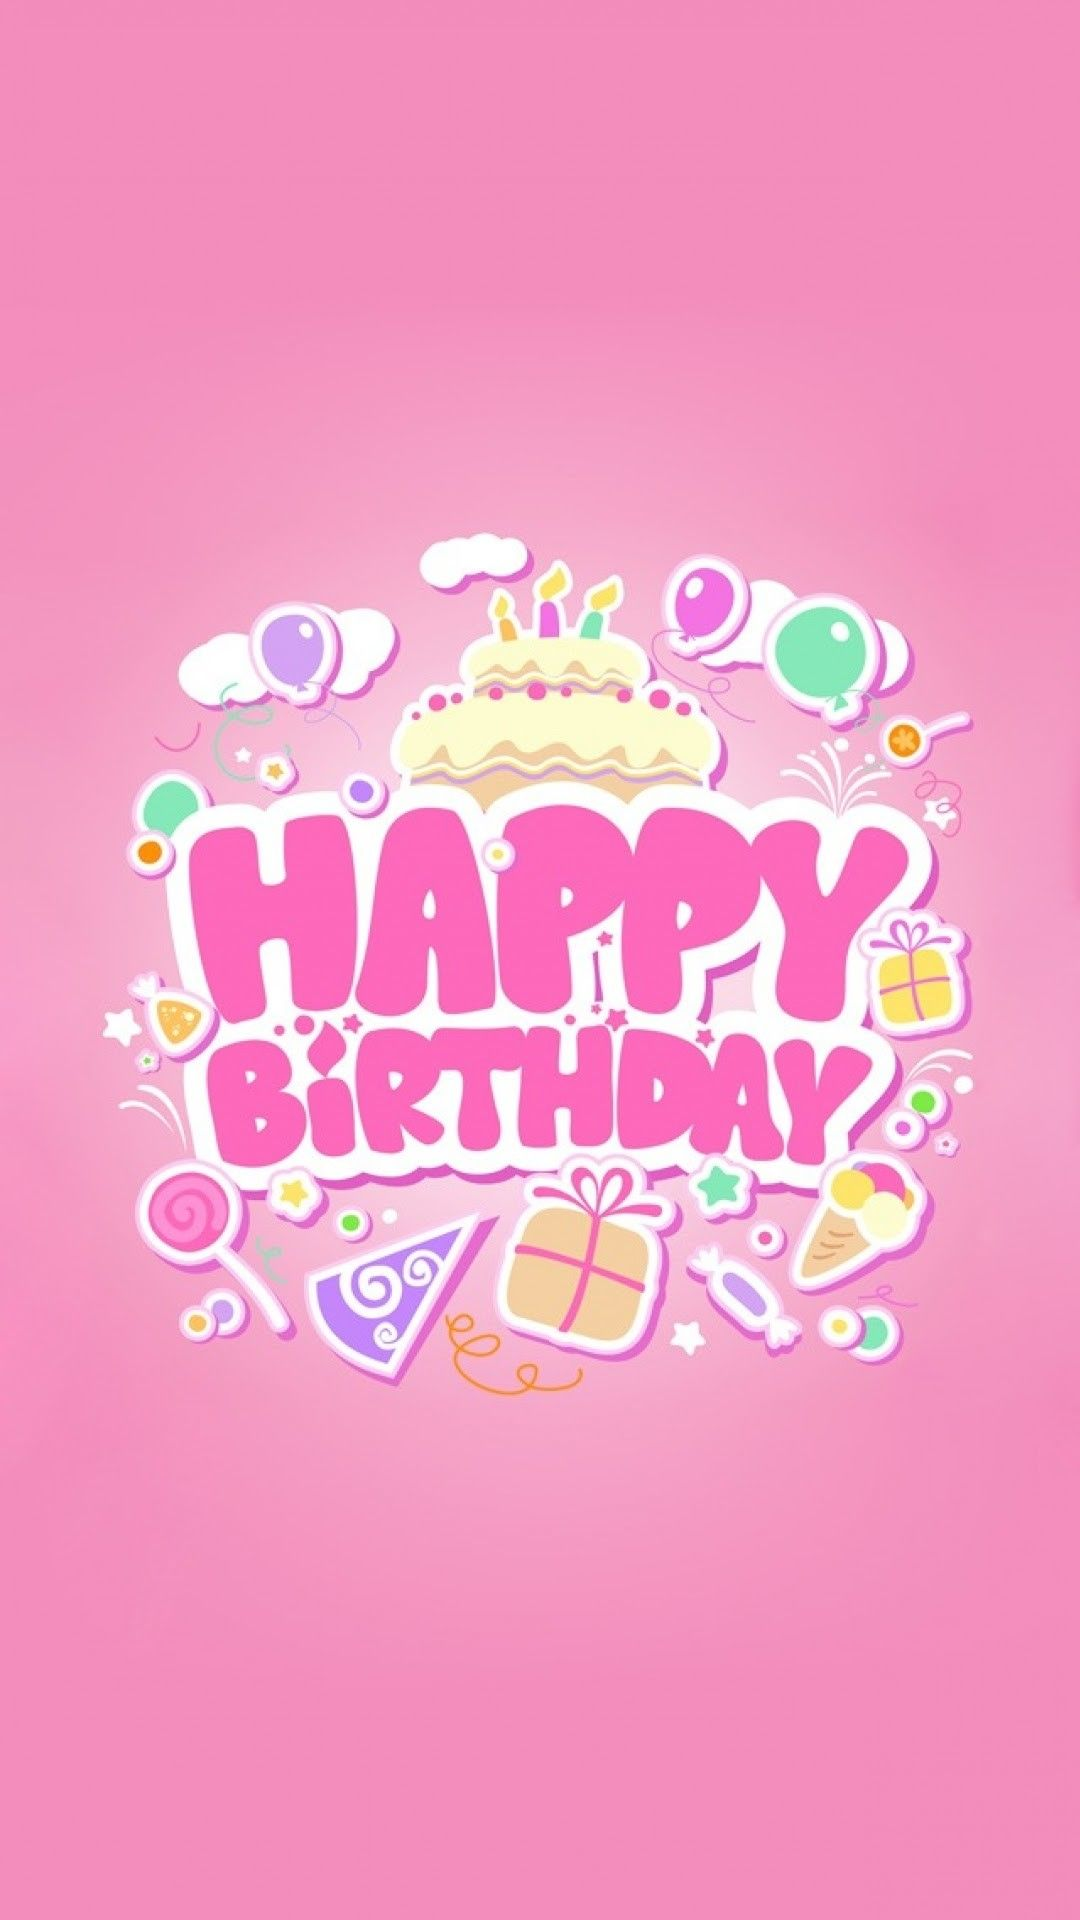 Happy Birthday Iphone Wallpapers Top Free Happy Birthday Iphone Backgrounds Wallpaperaccess